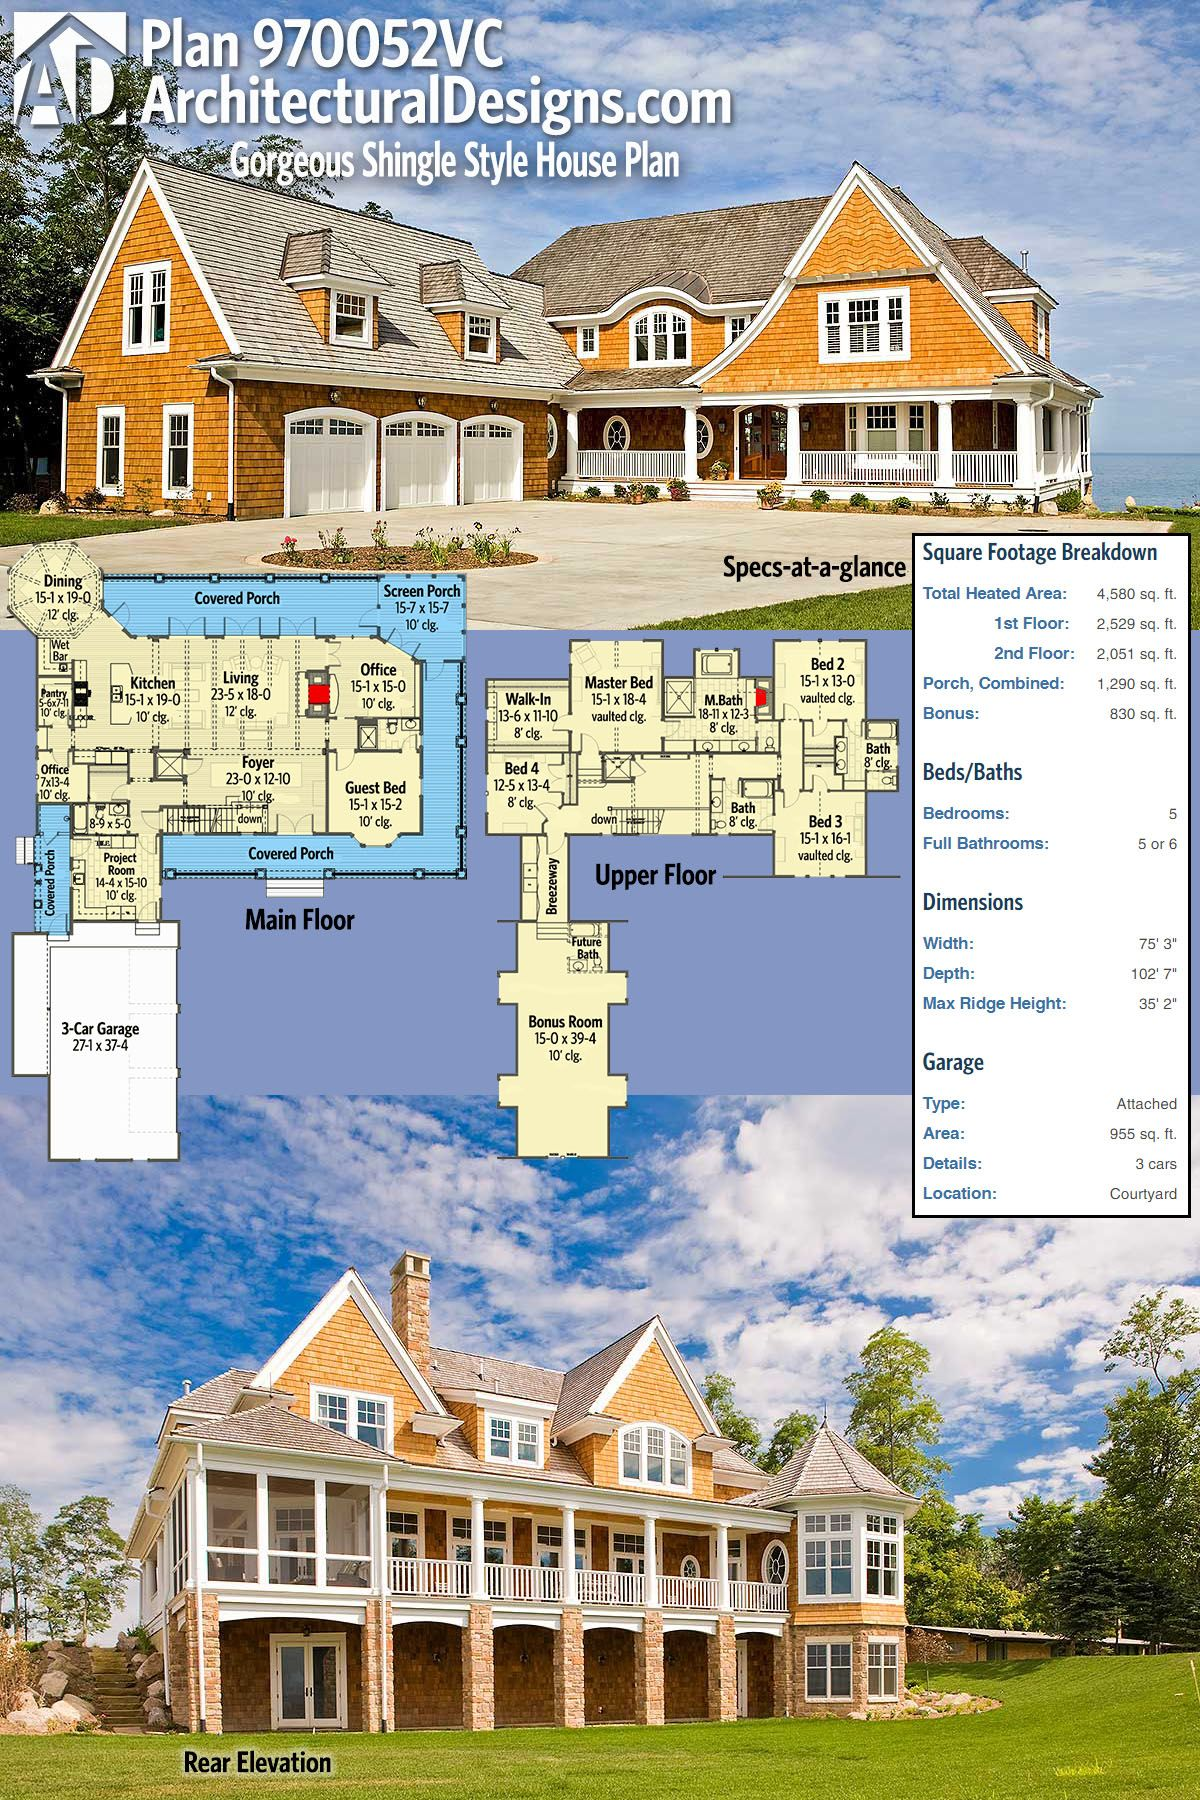 Architectural Designs Gorgeous Shingle Style House Plan